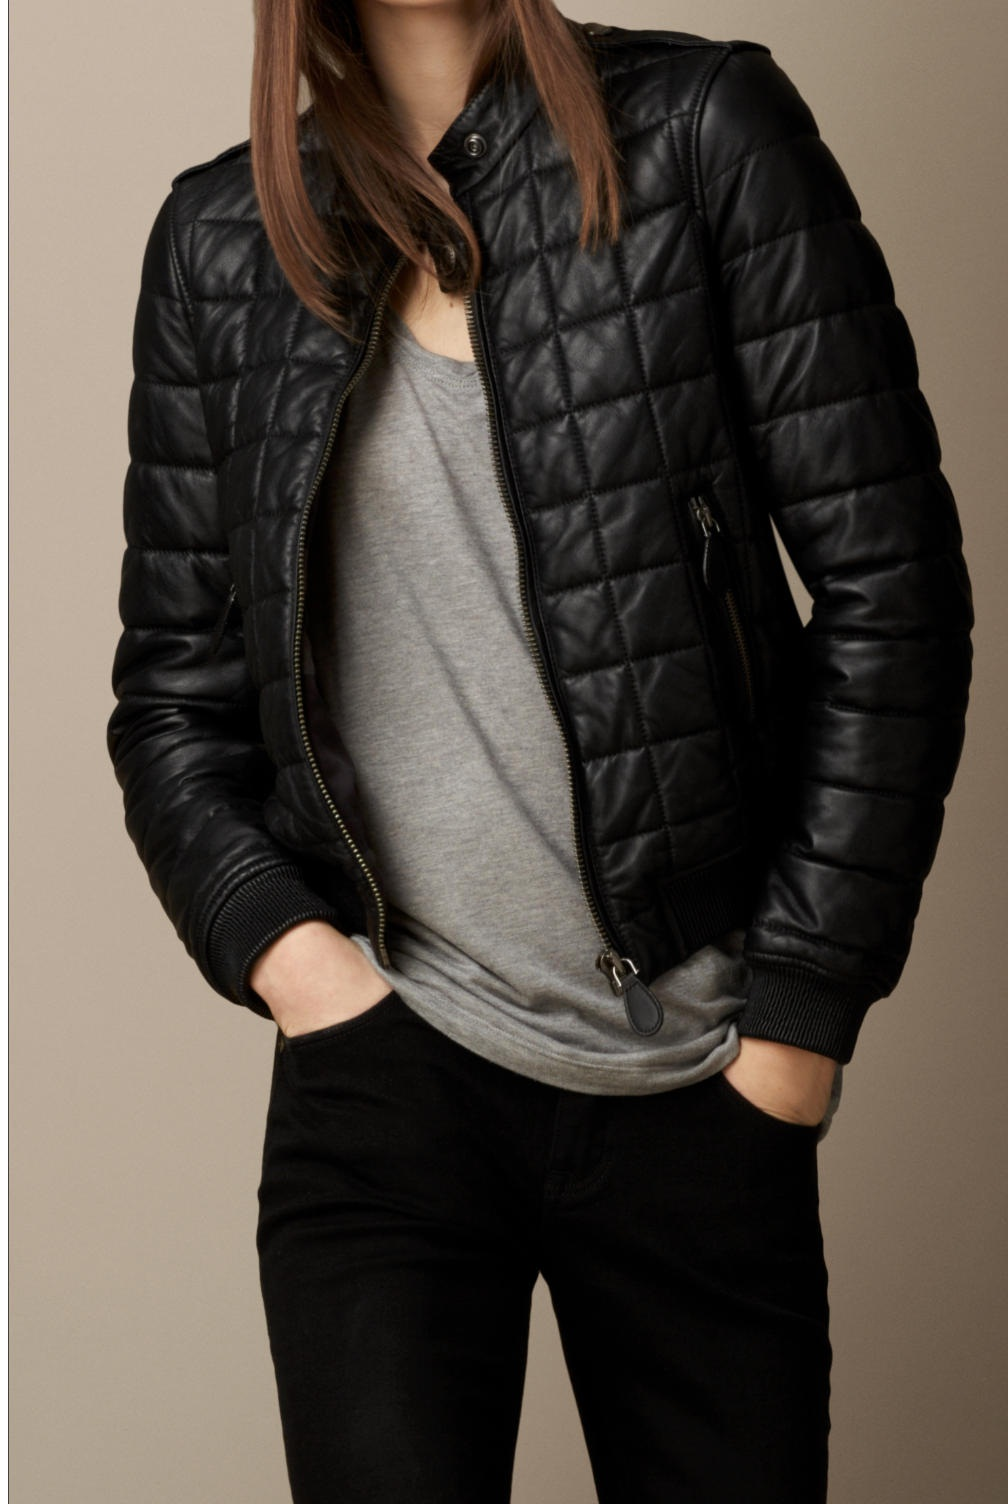 Womens leather jacket quilted – Modern fashion jacket photo blog